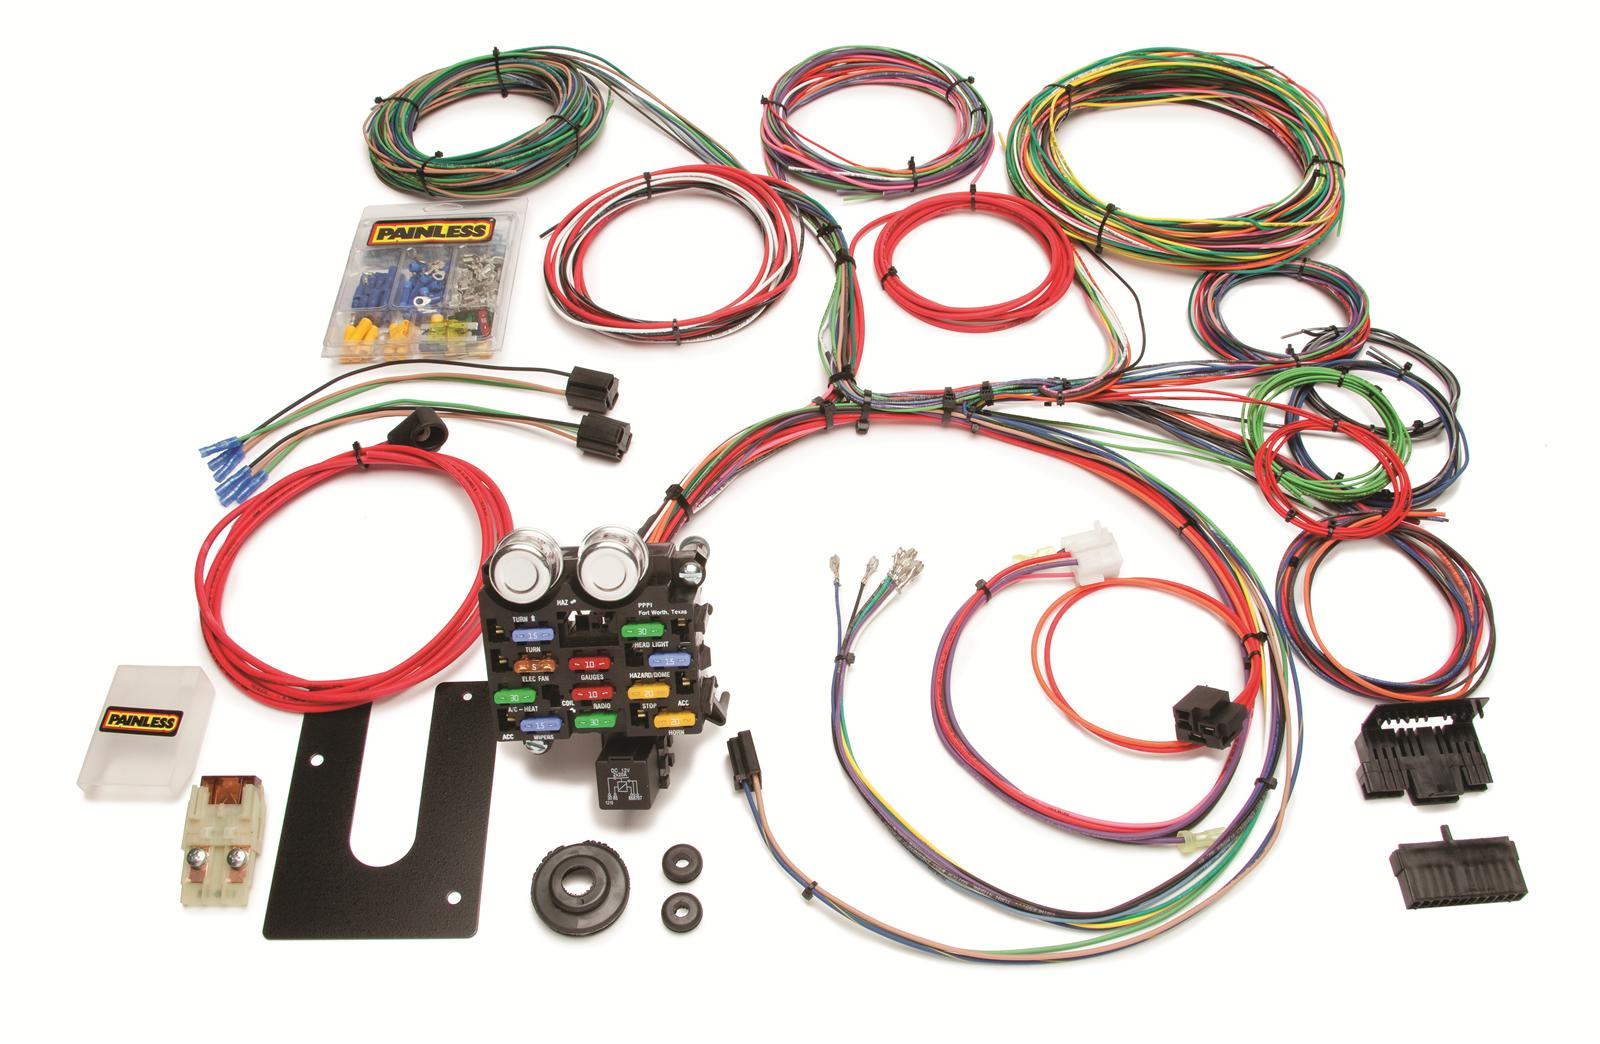 Painless Performance 21 Circuit Universal Harnesses 10101 Free Wiring Harness Mazda Kia Jeep Shipping On Orders Over 49 At Summit Racing